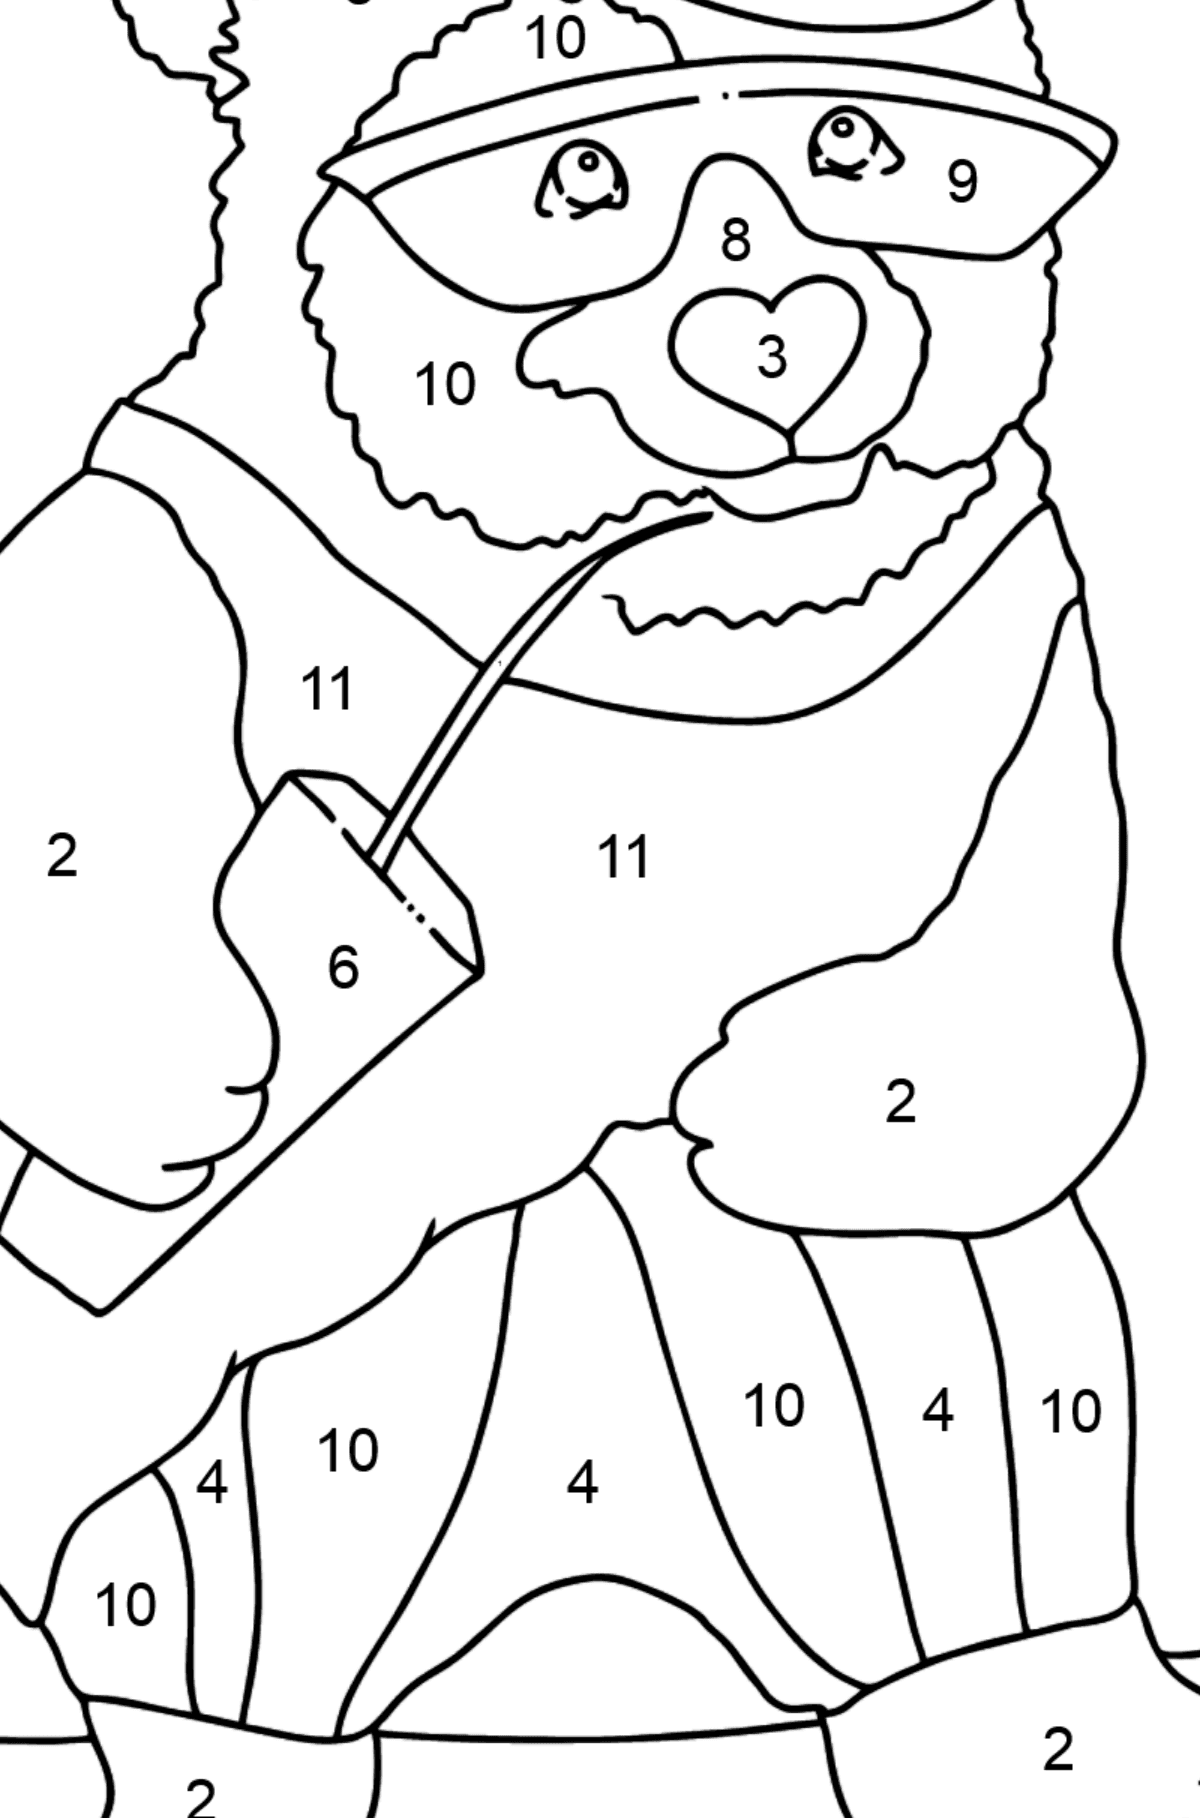 Coloring Page - A Panda is Learning to Ride a Skateboard - Coloring by Numbers for Kids